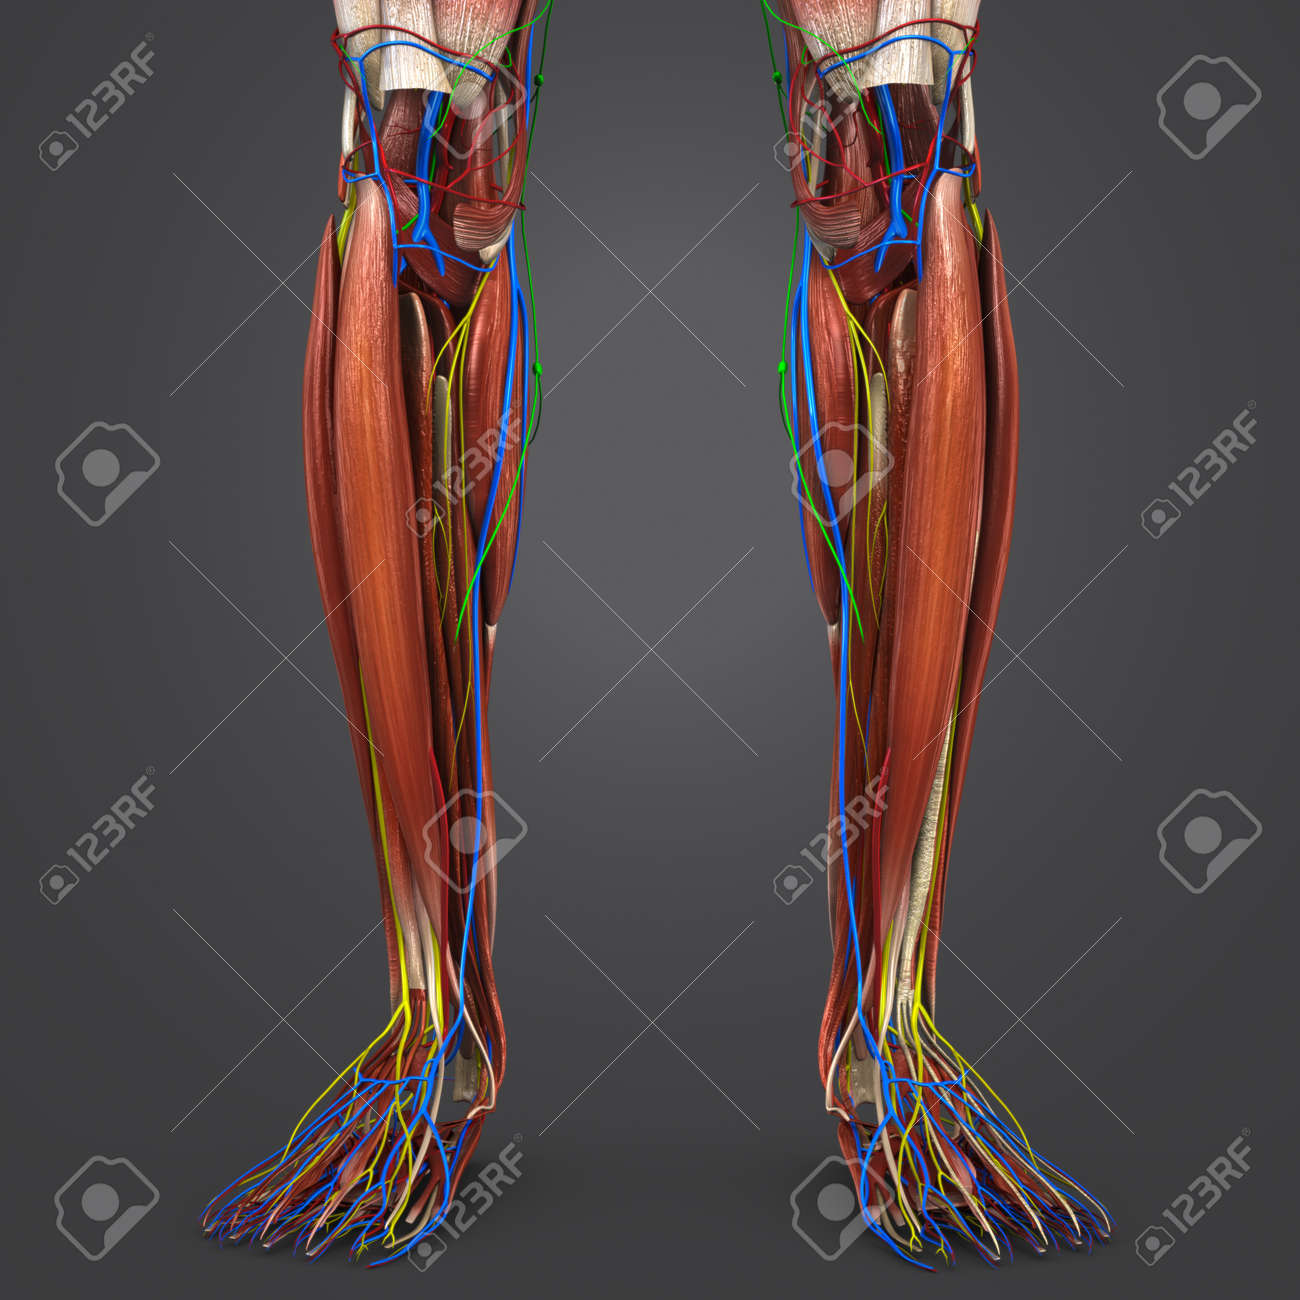 Leg Muscles Anatomy With Blood Vessels, Nerves And Lymph Nodes Stock ...